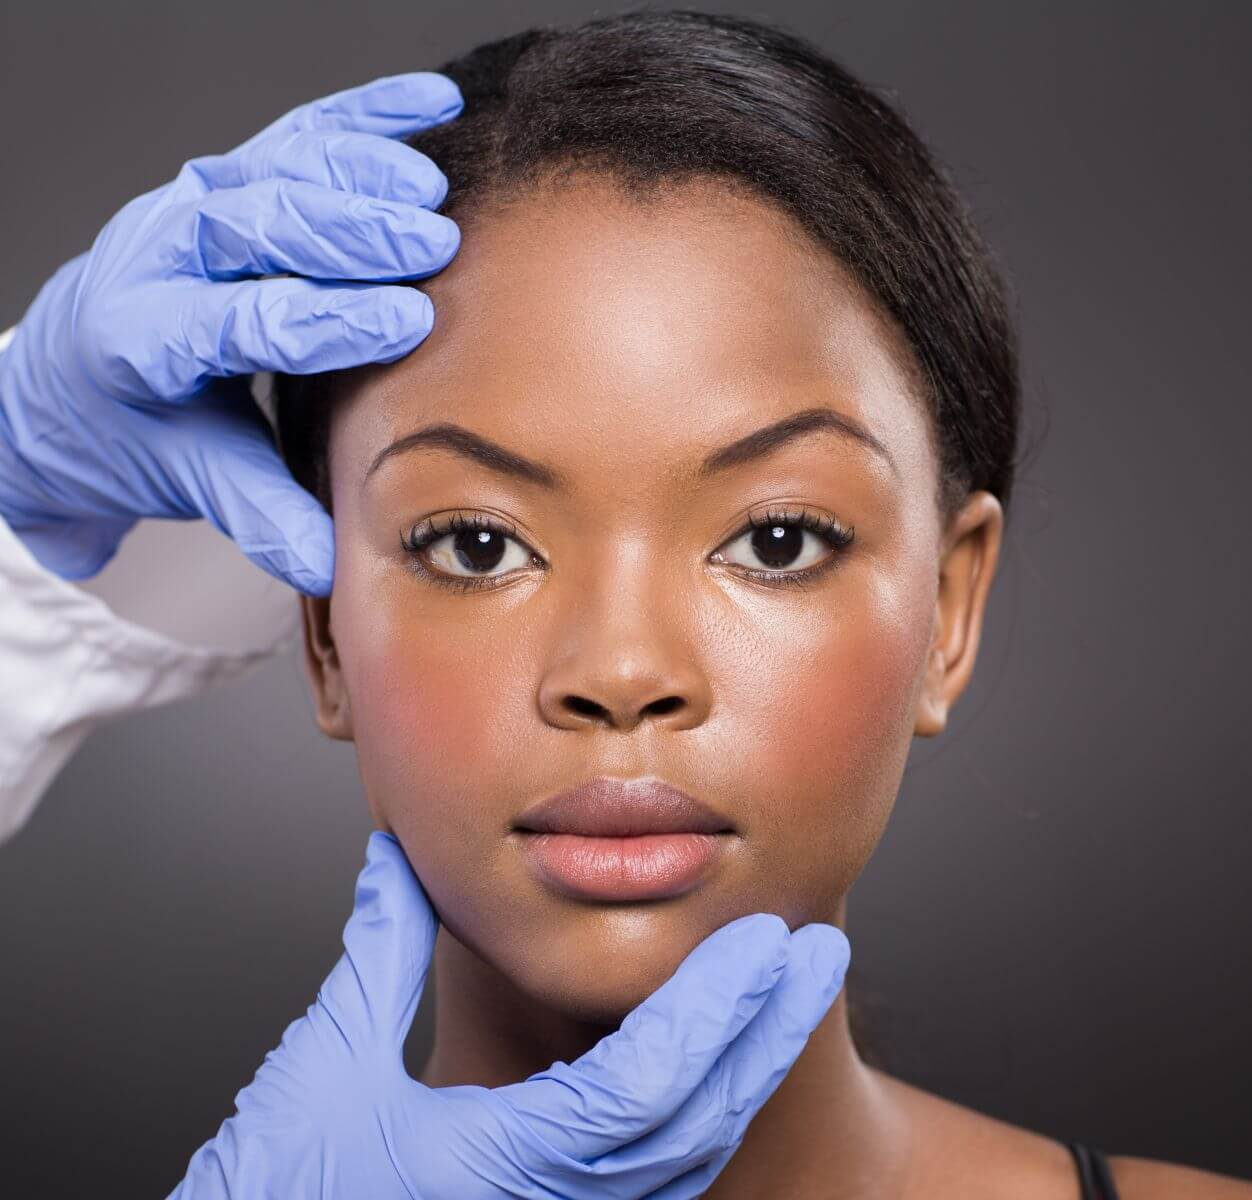 Diagnosing Rosacea In Darker Skin Can Often Be Difficult Rosacea Org